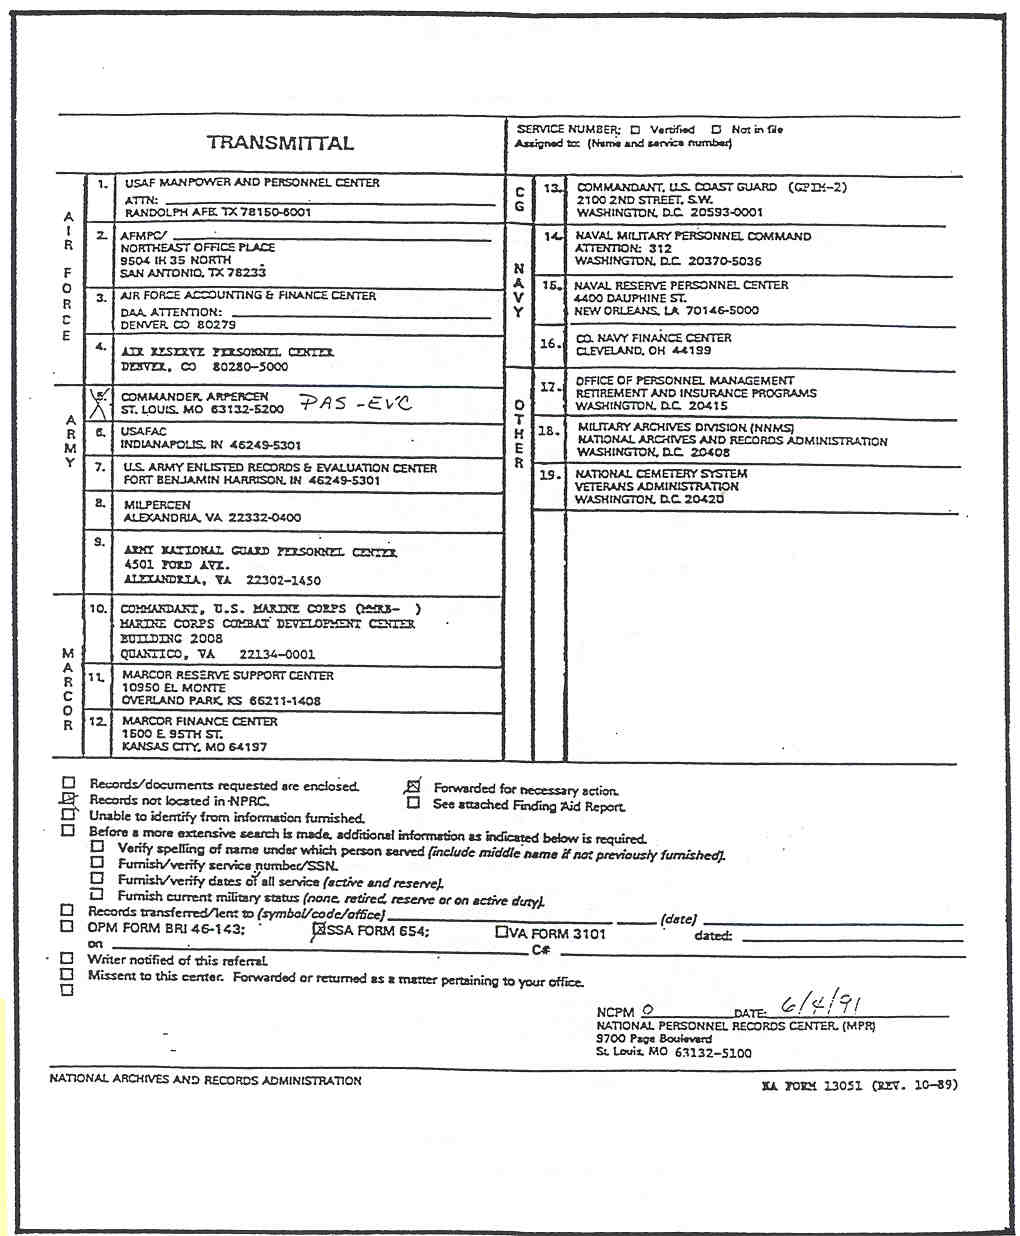 Sample of NA Form 13051 completed to show request referred